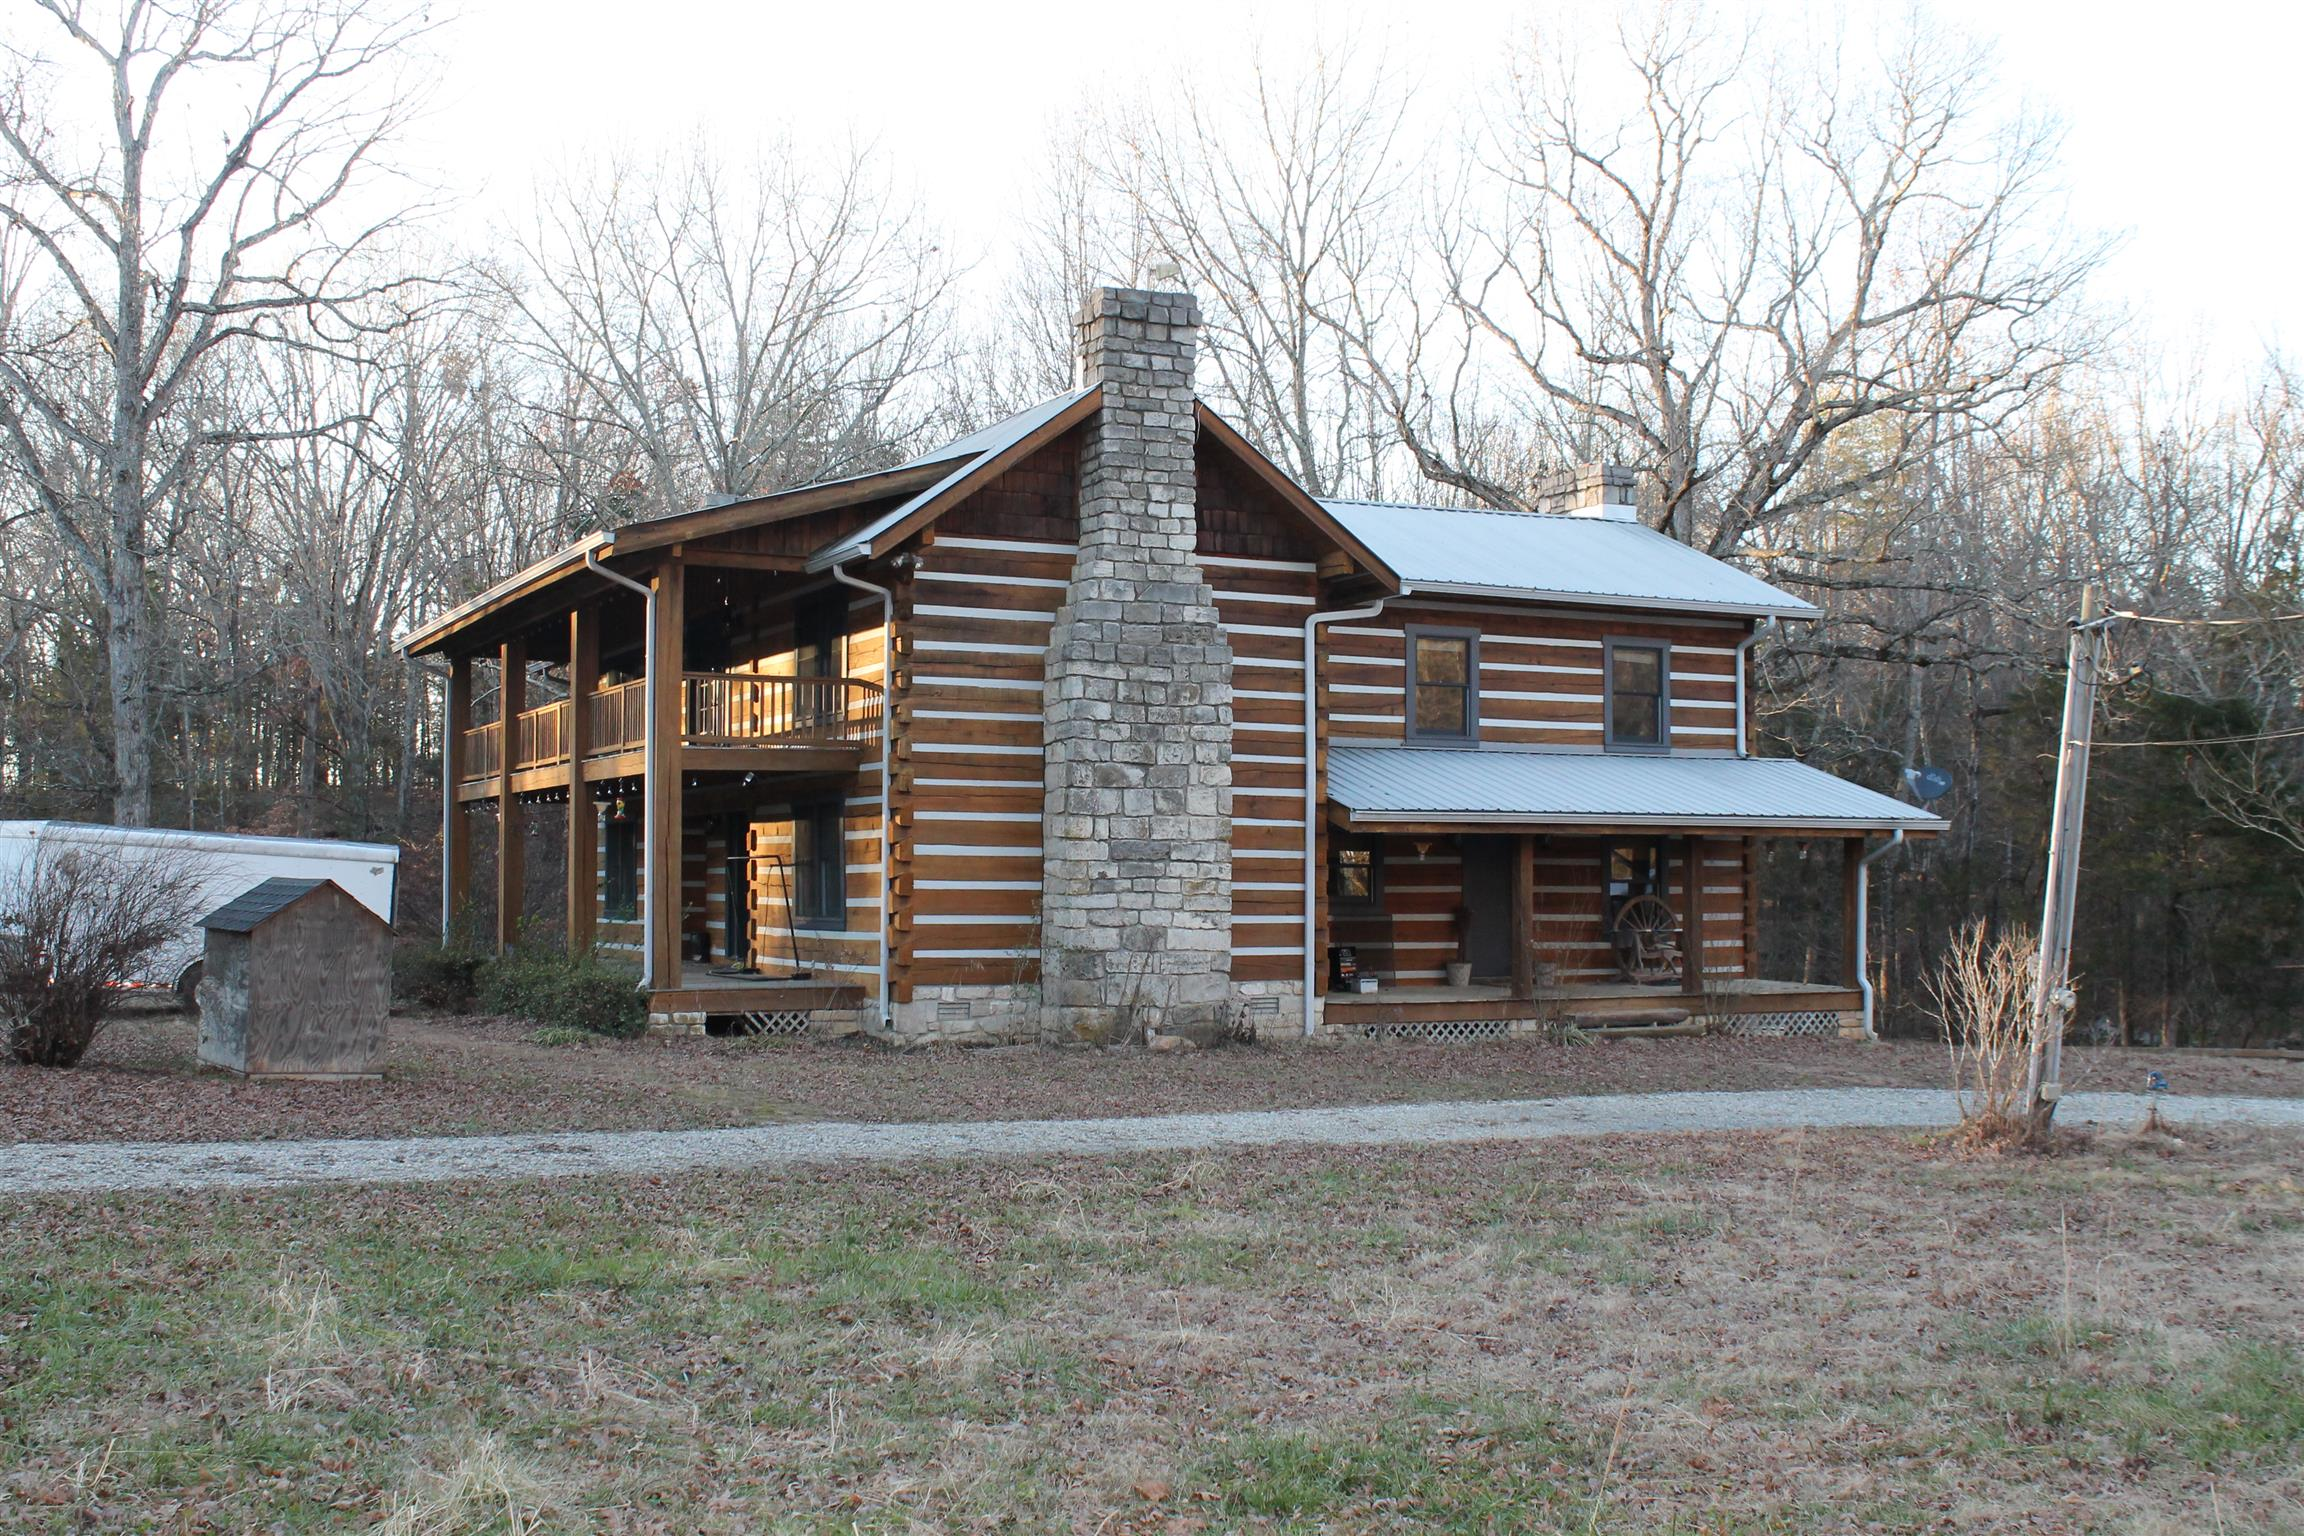 1015 Old Stage Rd, Dickson, TN 37055 - Dickson, TN real estate listing